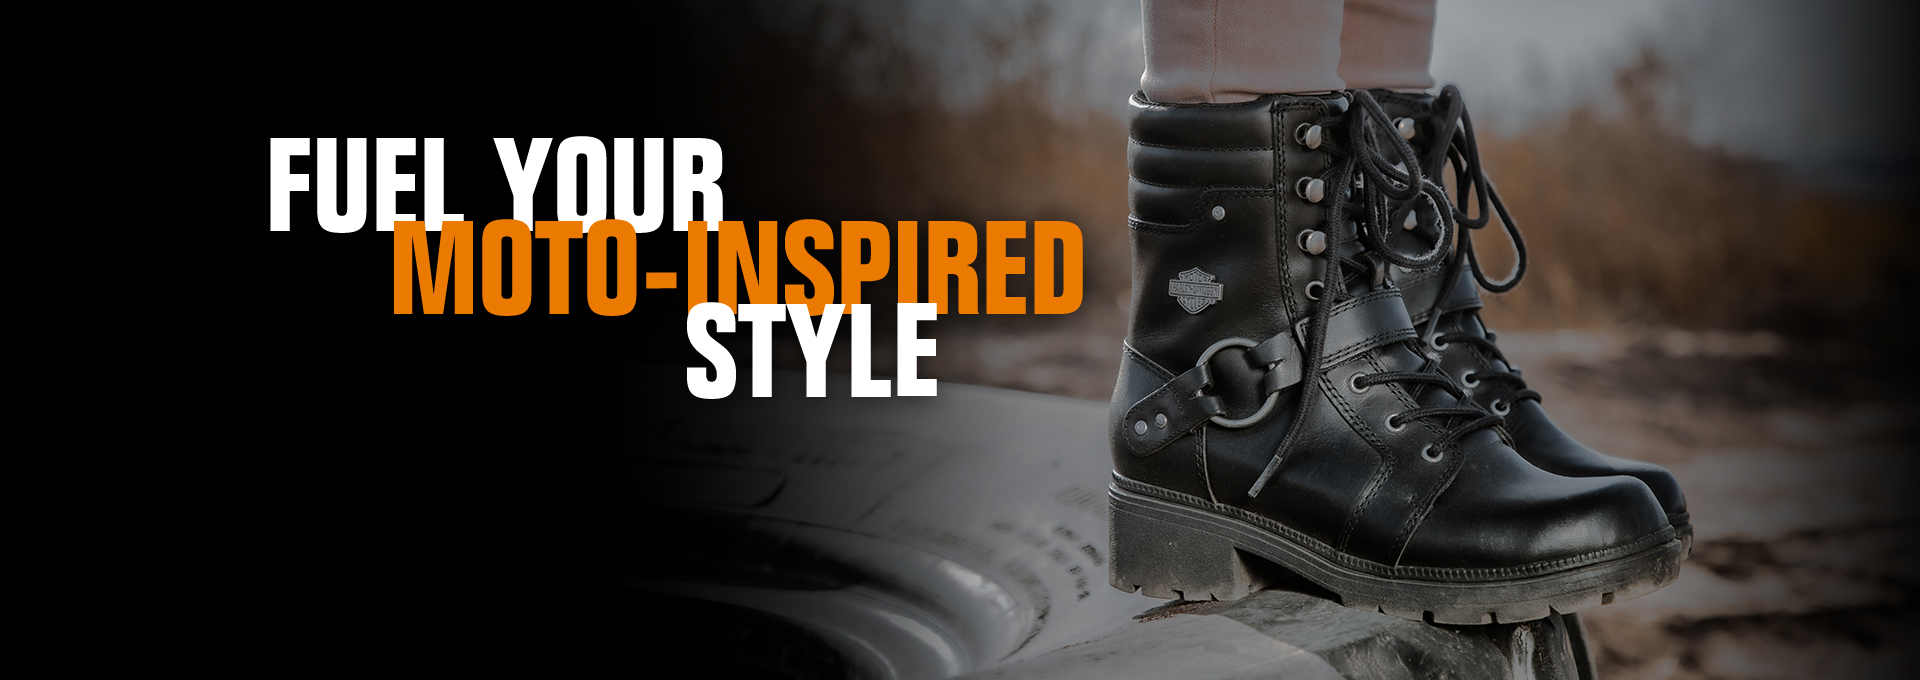 FUEL YOUR MOTO-INSPIRED STYLE